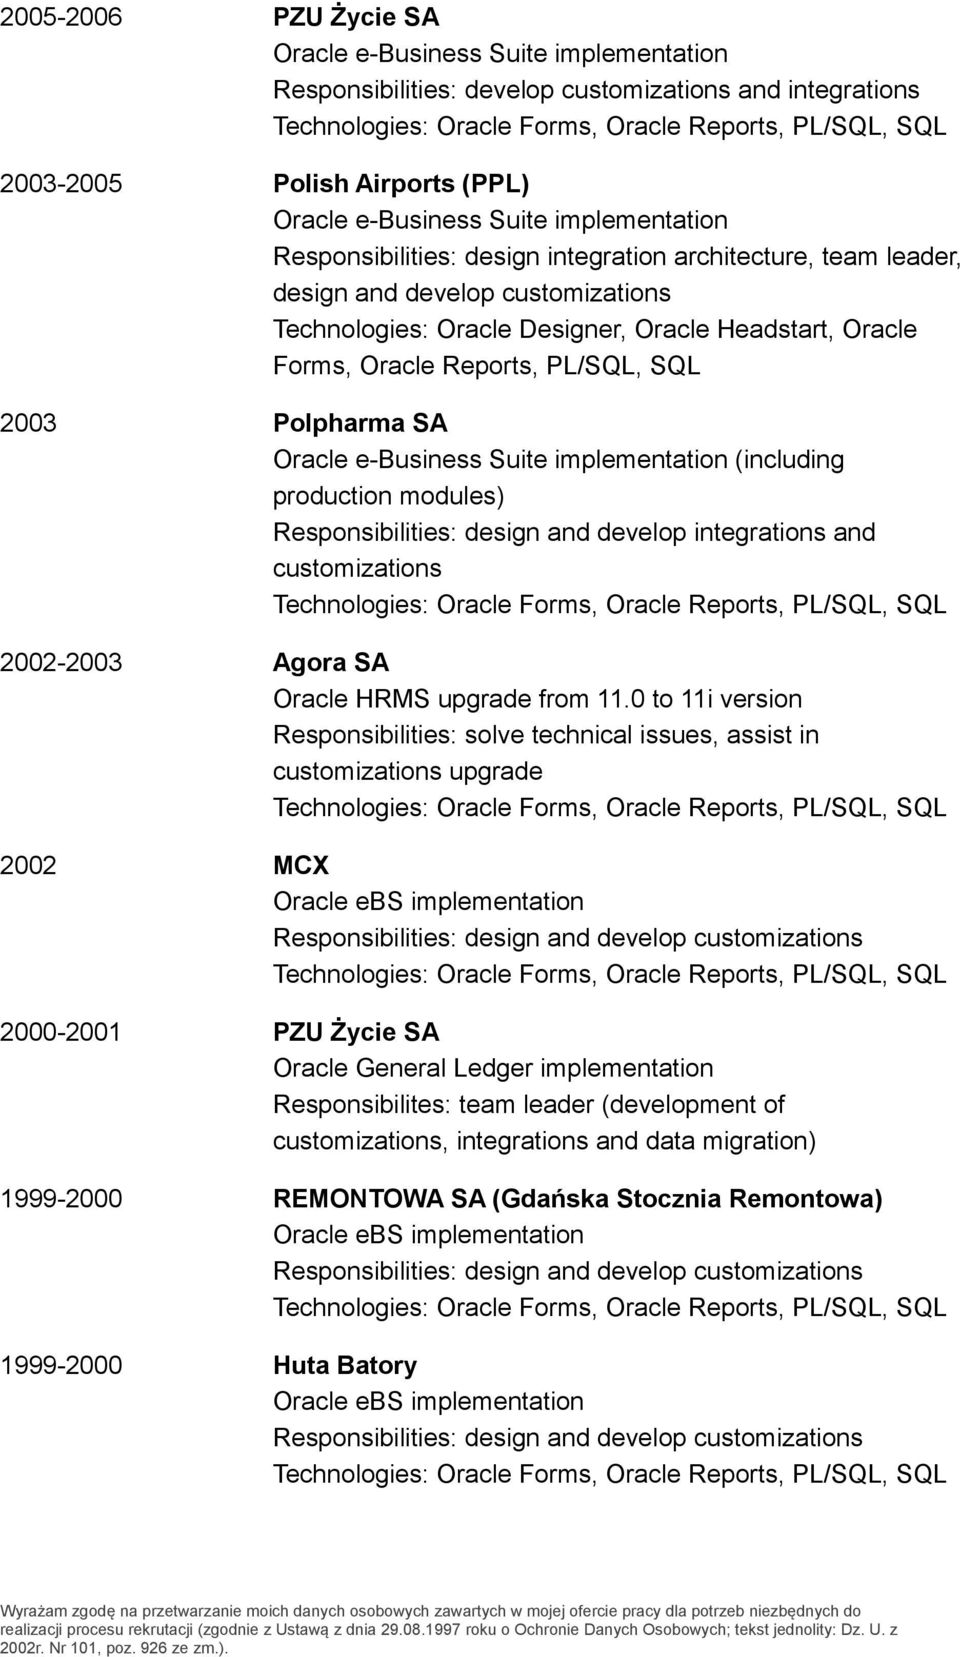 Polpharma SA Oracle e-business Suite implementation (including production modules) Responsibilities: design and develop integrations and customizations 2002-2003 Agora SA Oracle HRMS upgrade from 11.